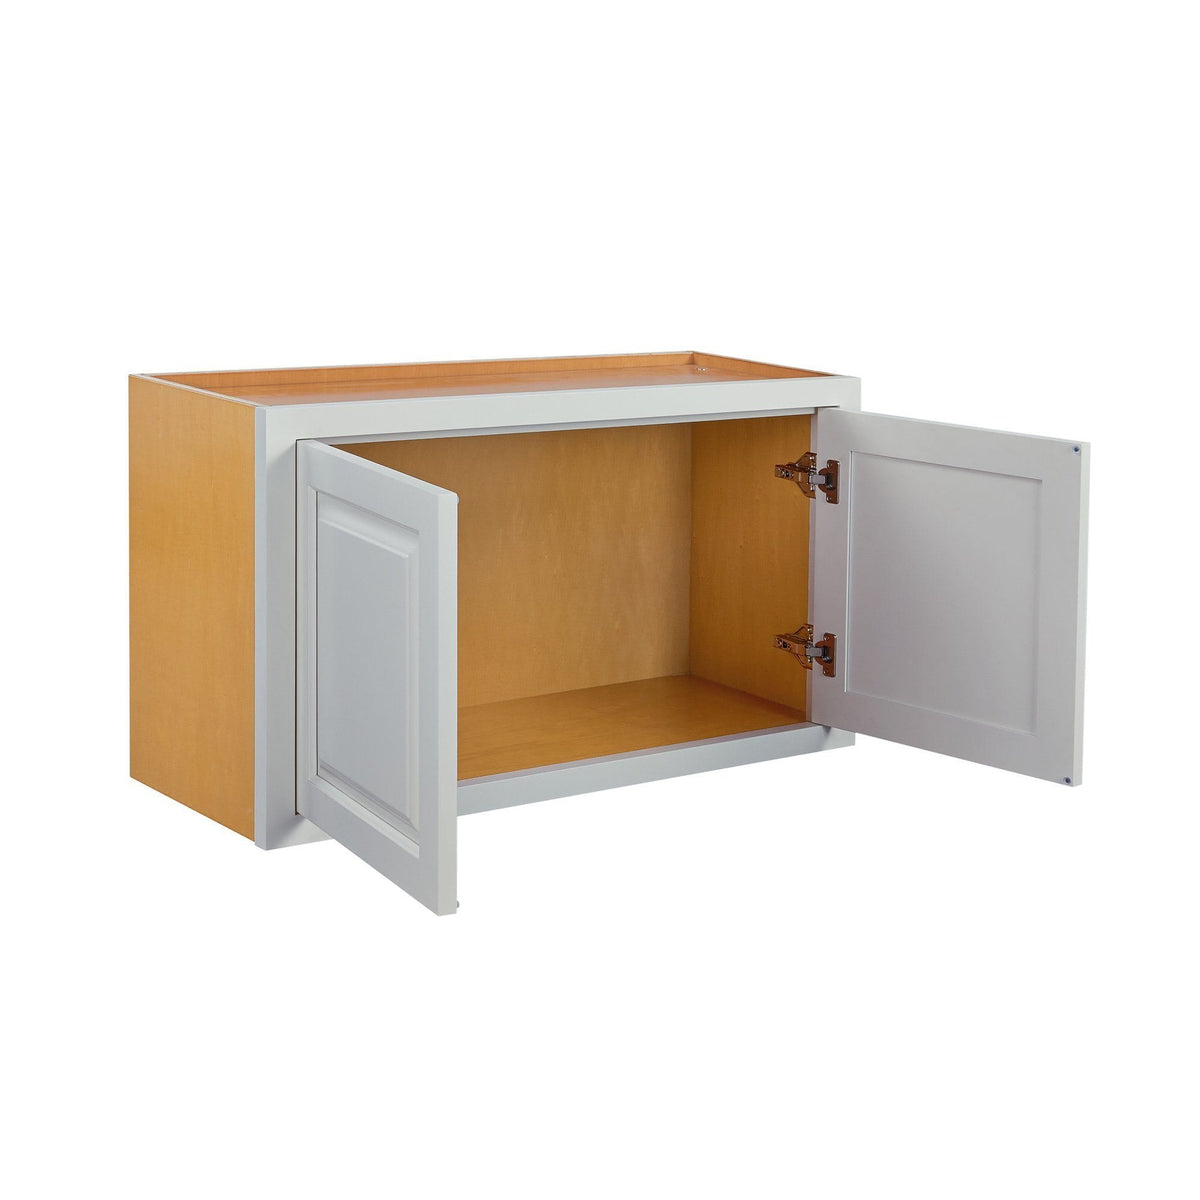 "Wall Cabinet 36"" Wide Bridge Vintage White Inset Raised Panel Wall Cabinet - Double Door 12"", 15"", 18"", 21""& 24"" Tall Inset Kitchen Cabinets"